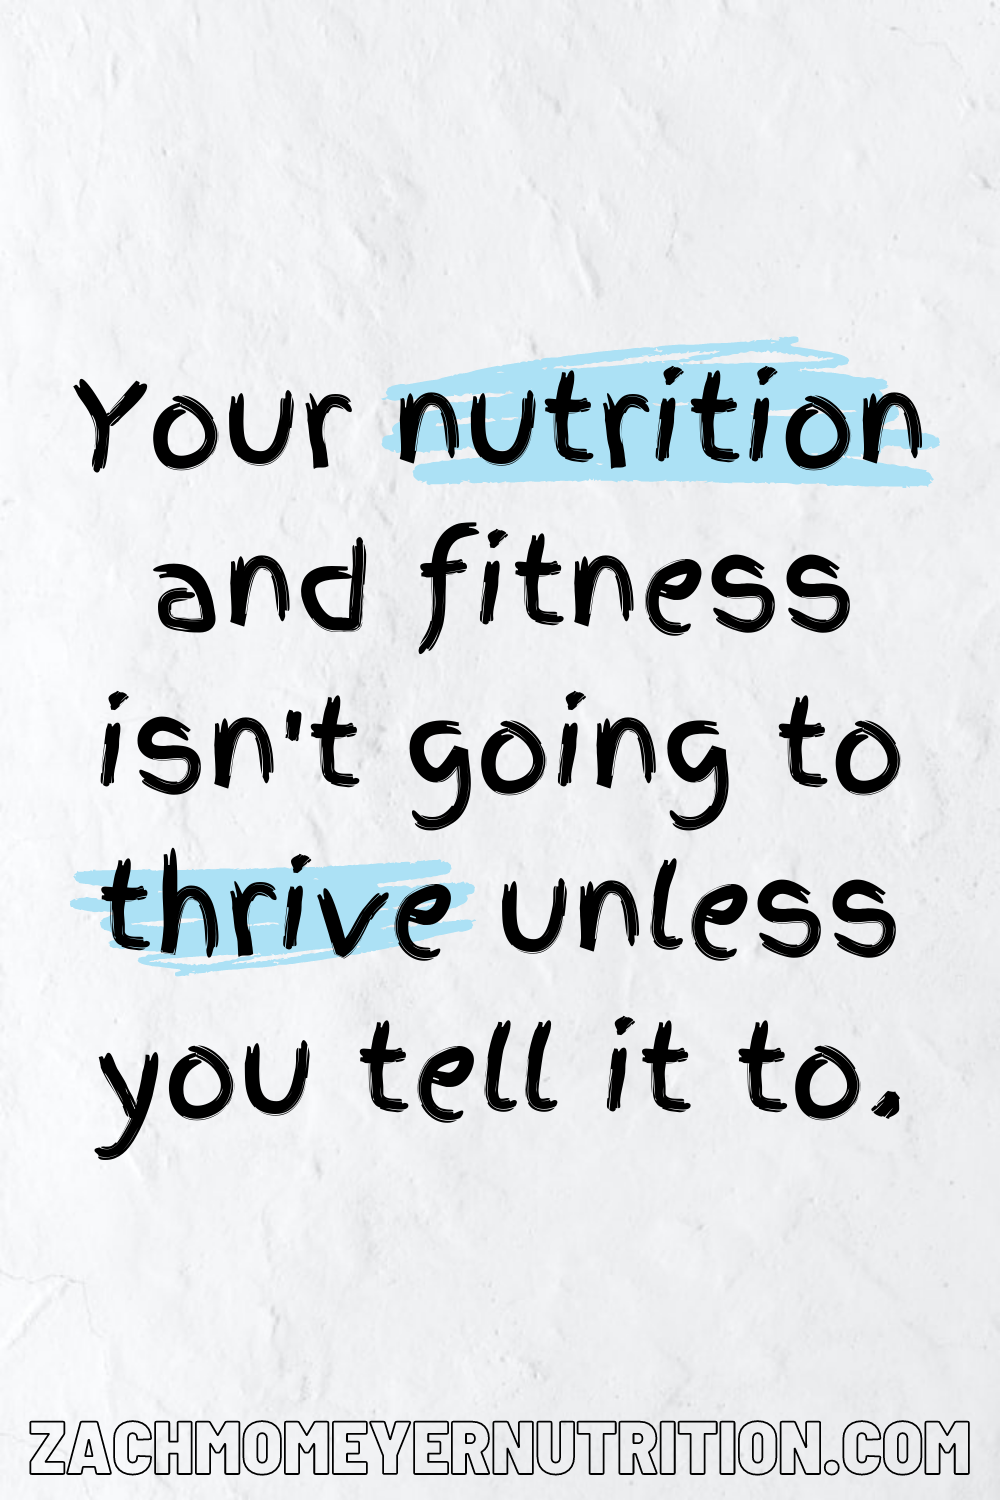 Only you get to tell you what to do, not your food or gym routine. No diet is going to help you thrive! Read more about taking back control of your nutrition and stop listening to popular trends that tell you the only way to a healthier you is to restrict the foods you want to eat. #eatwithjoy #joyfuleating #foodfirst #eatbetternotless #eatbetterfeelbetter #eatbetterlivebetter #eatrealfood #focusonthegood #foodisnottheenemy #antidiet #dietsdontwork #foodfreedom #longtermgoals #thriving